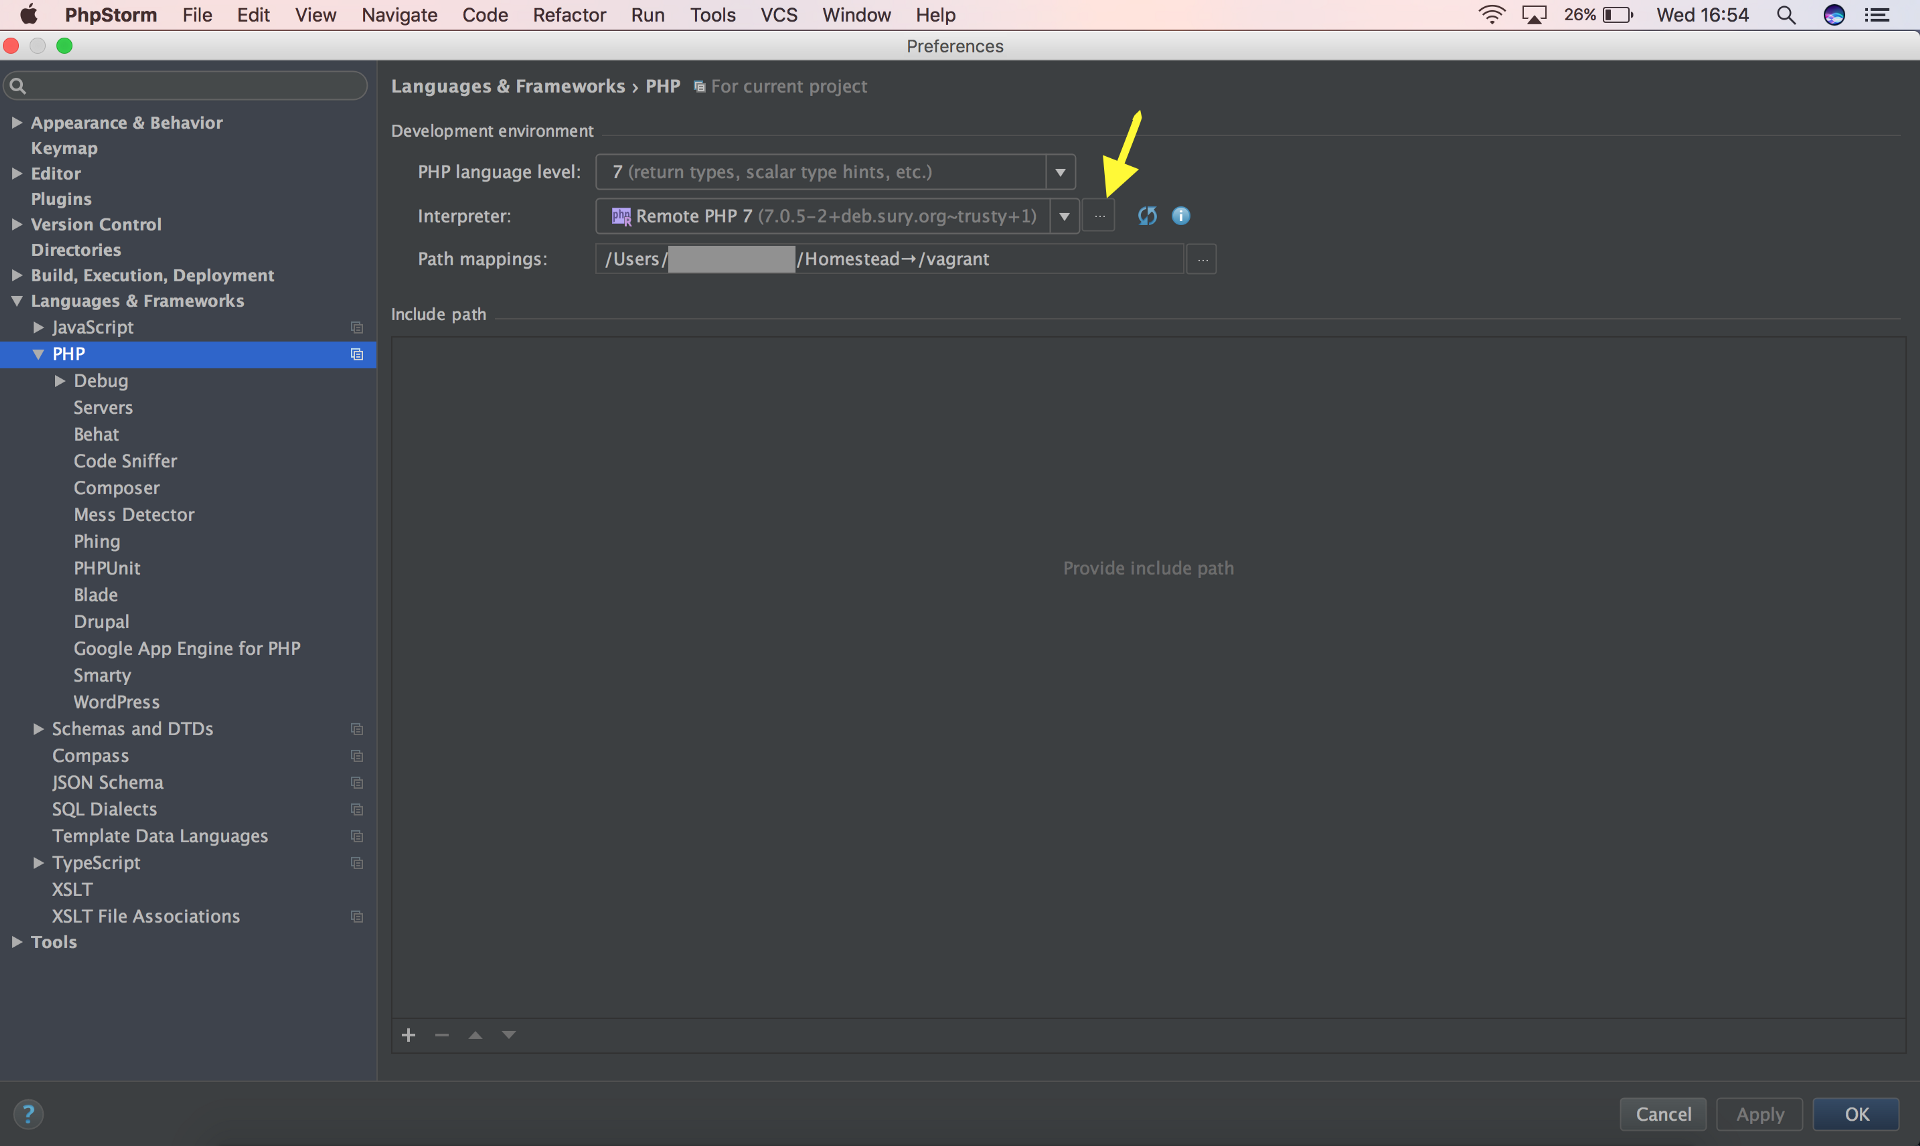 Debugging Laravel Homestead Applications with PHPStorm